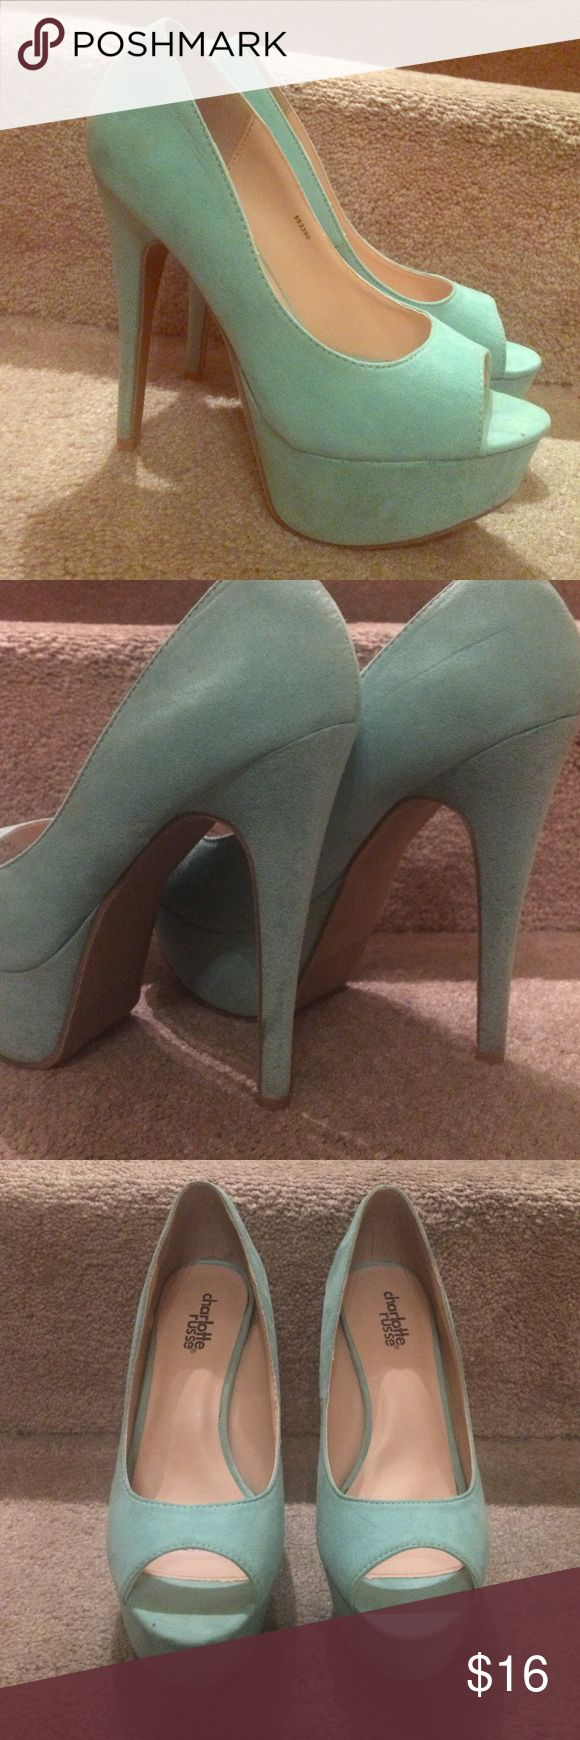 Price Drop🔹Mint Green Pumps Charlotte Russe mint green faux suede pumps. Slight wear/markings on bottom of shoes and on the heels from wearing 3 times Charlotte Russe Shoes Heels